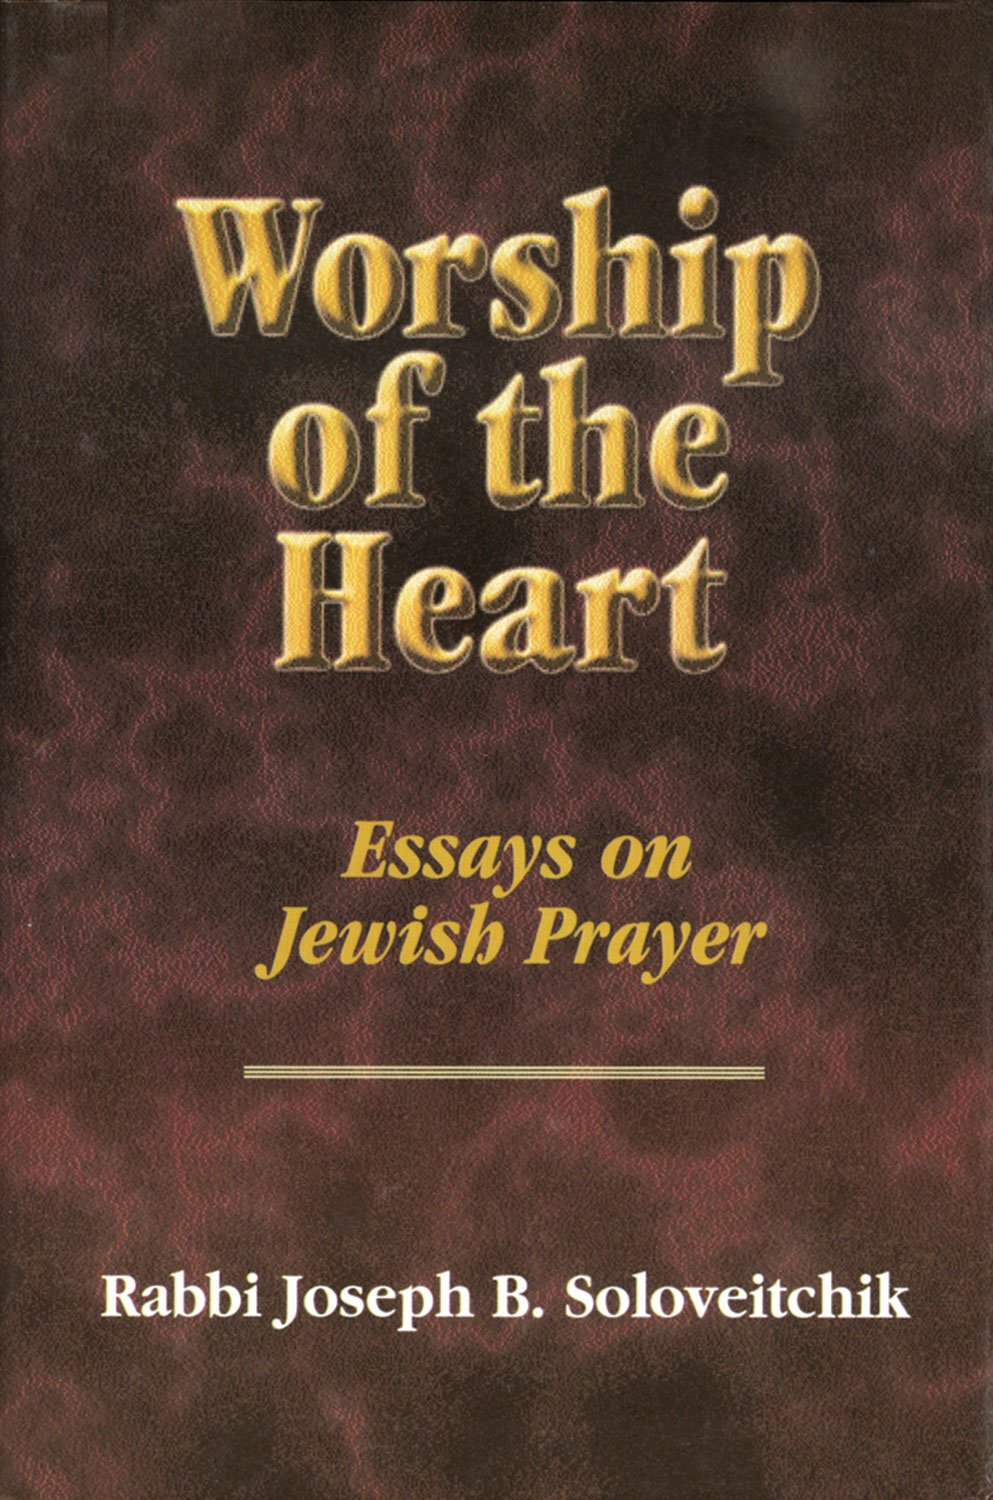 worship of the heart essays on jewish prayer meotzar horav worship of the heart essays on jewish prayer meotzar horav joseph b soloveitchik shalom carmy 9780881257717 com books